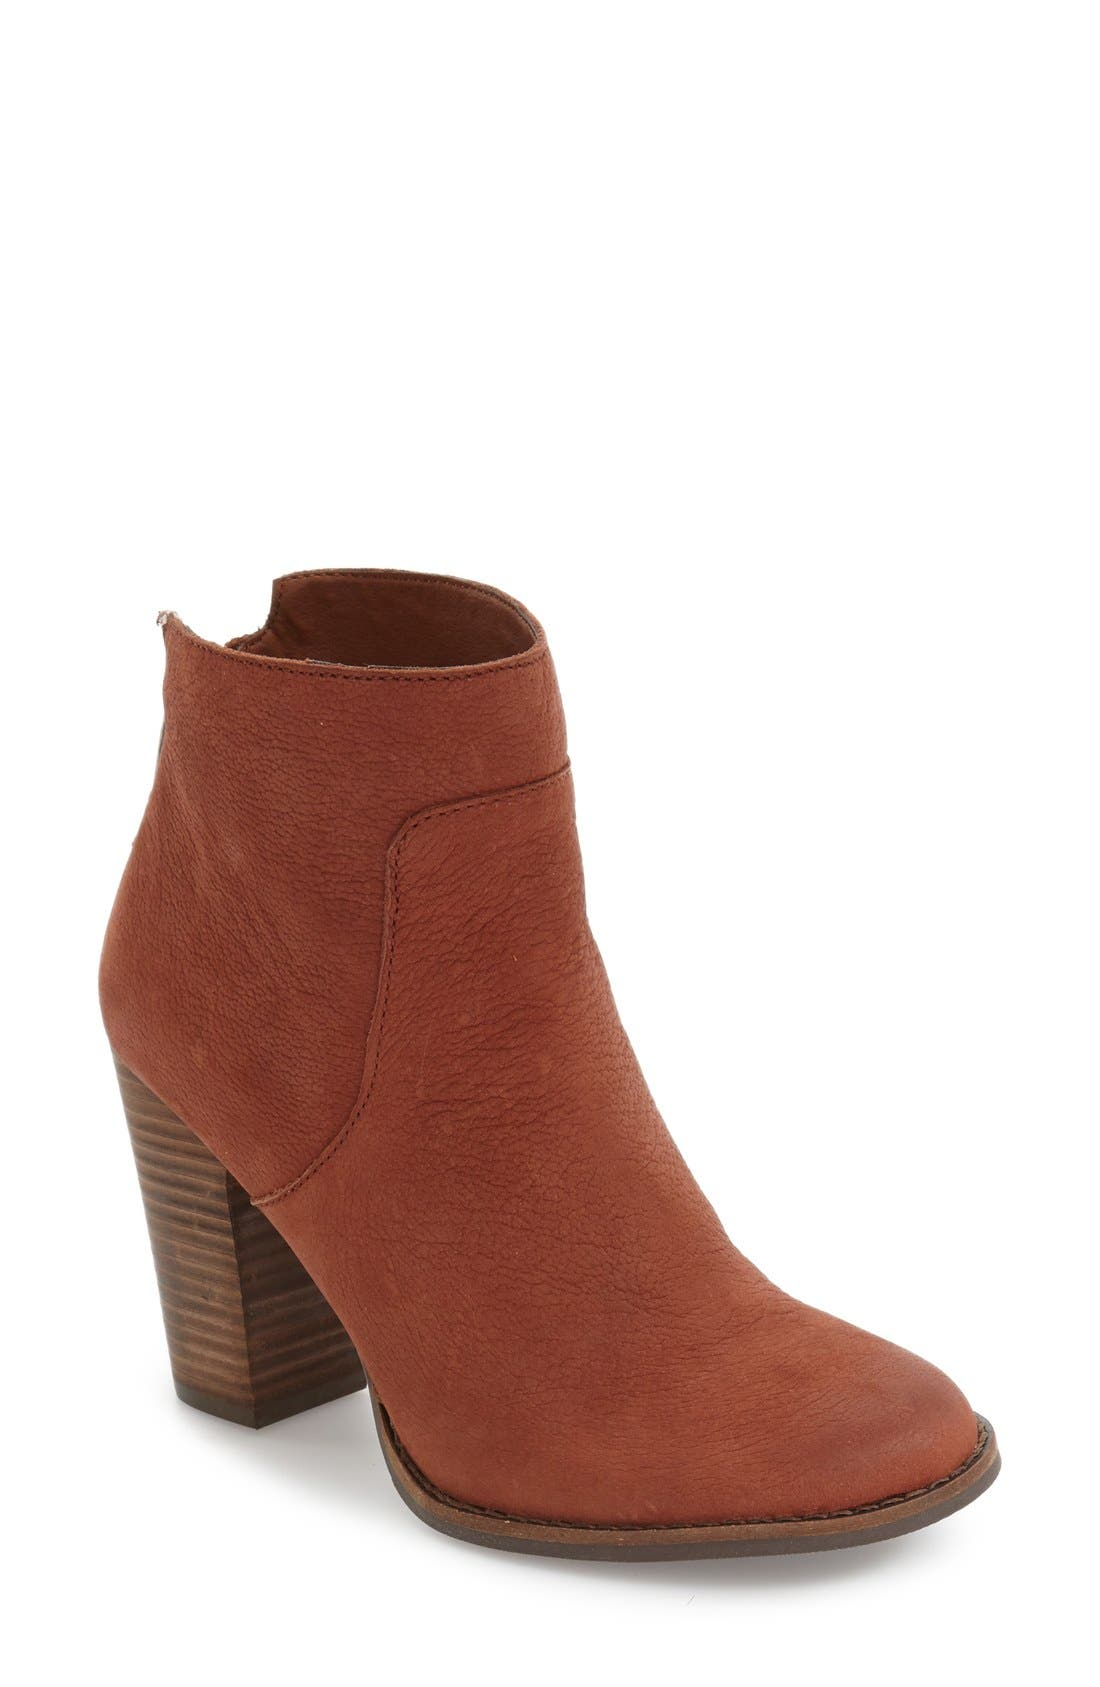 Alternate Image 1 Selected - Lucky Brand Liesell Bootie (Women)